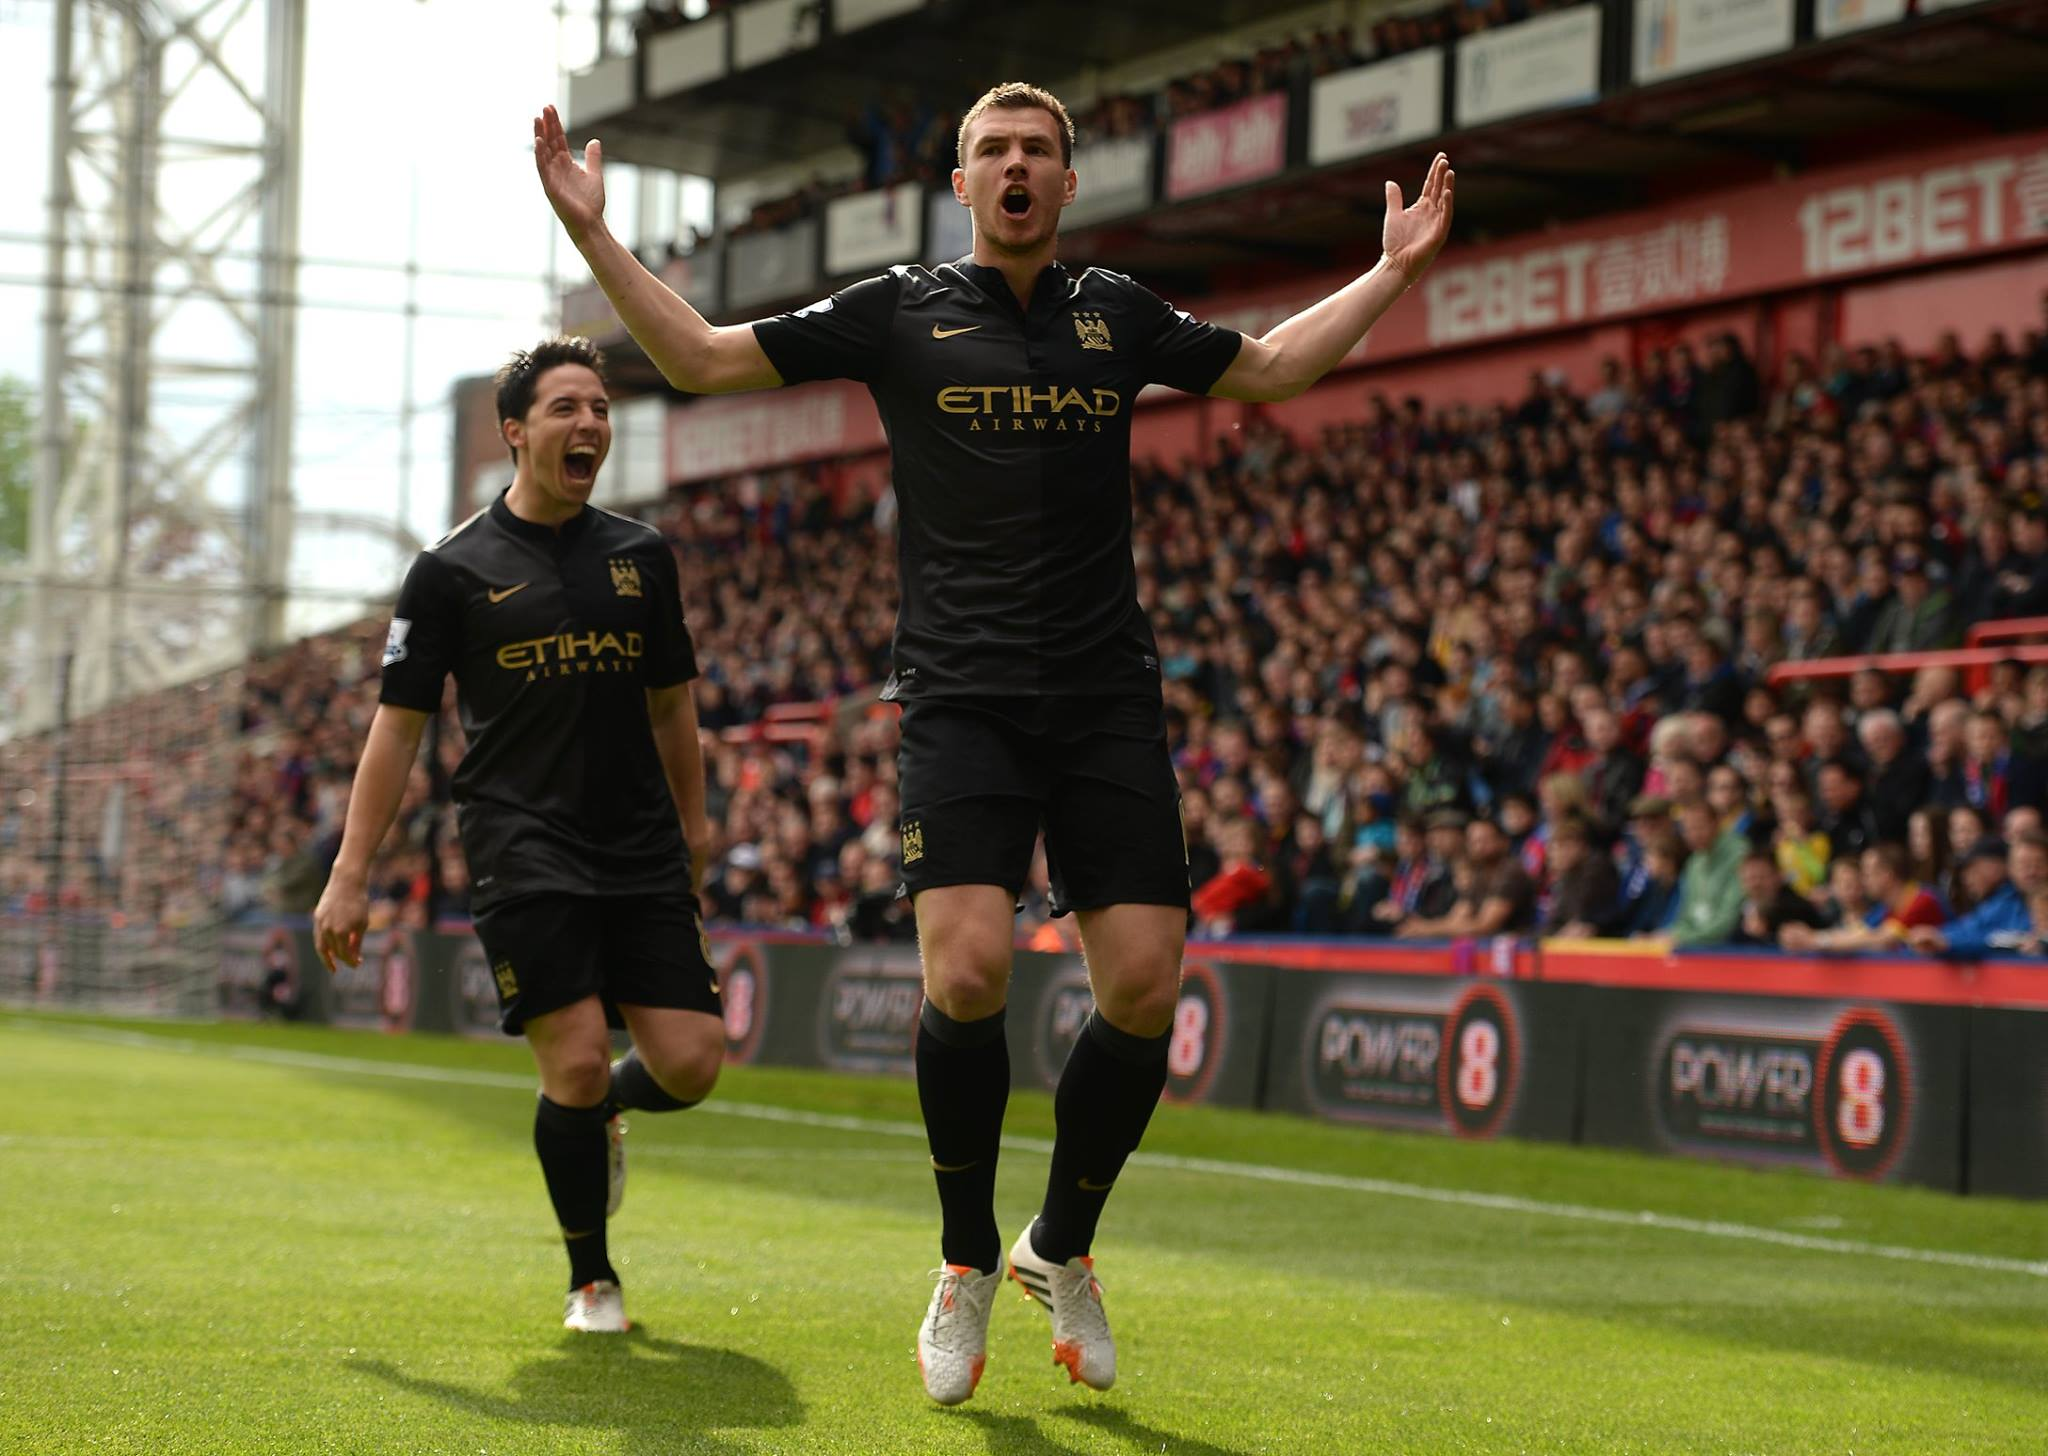 Happier times - Dzeko and Nasri celebrate during City's 2-0 win at Palace last season. Courtesy@MCFC